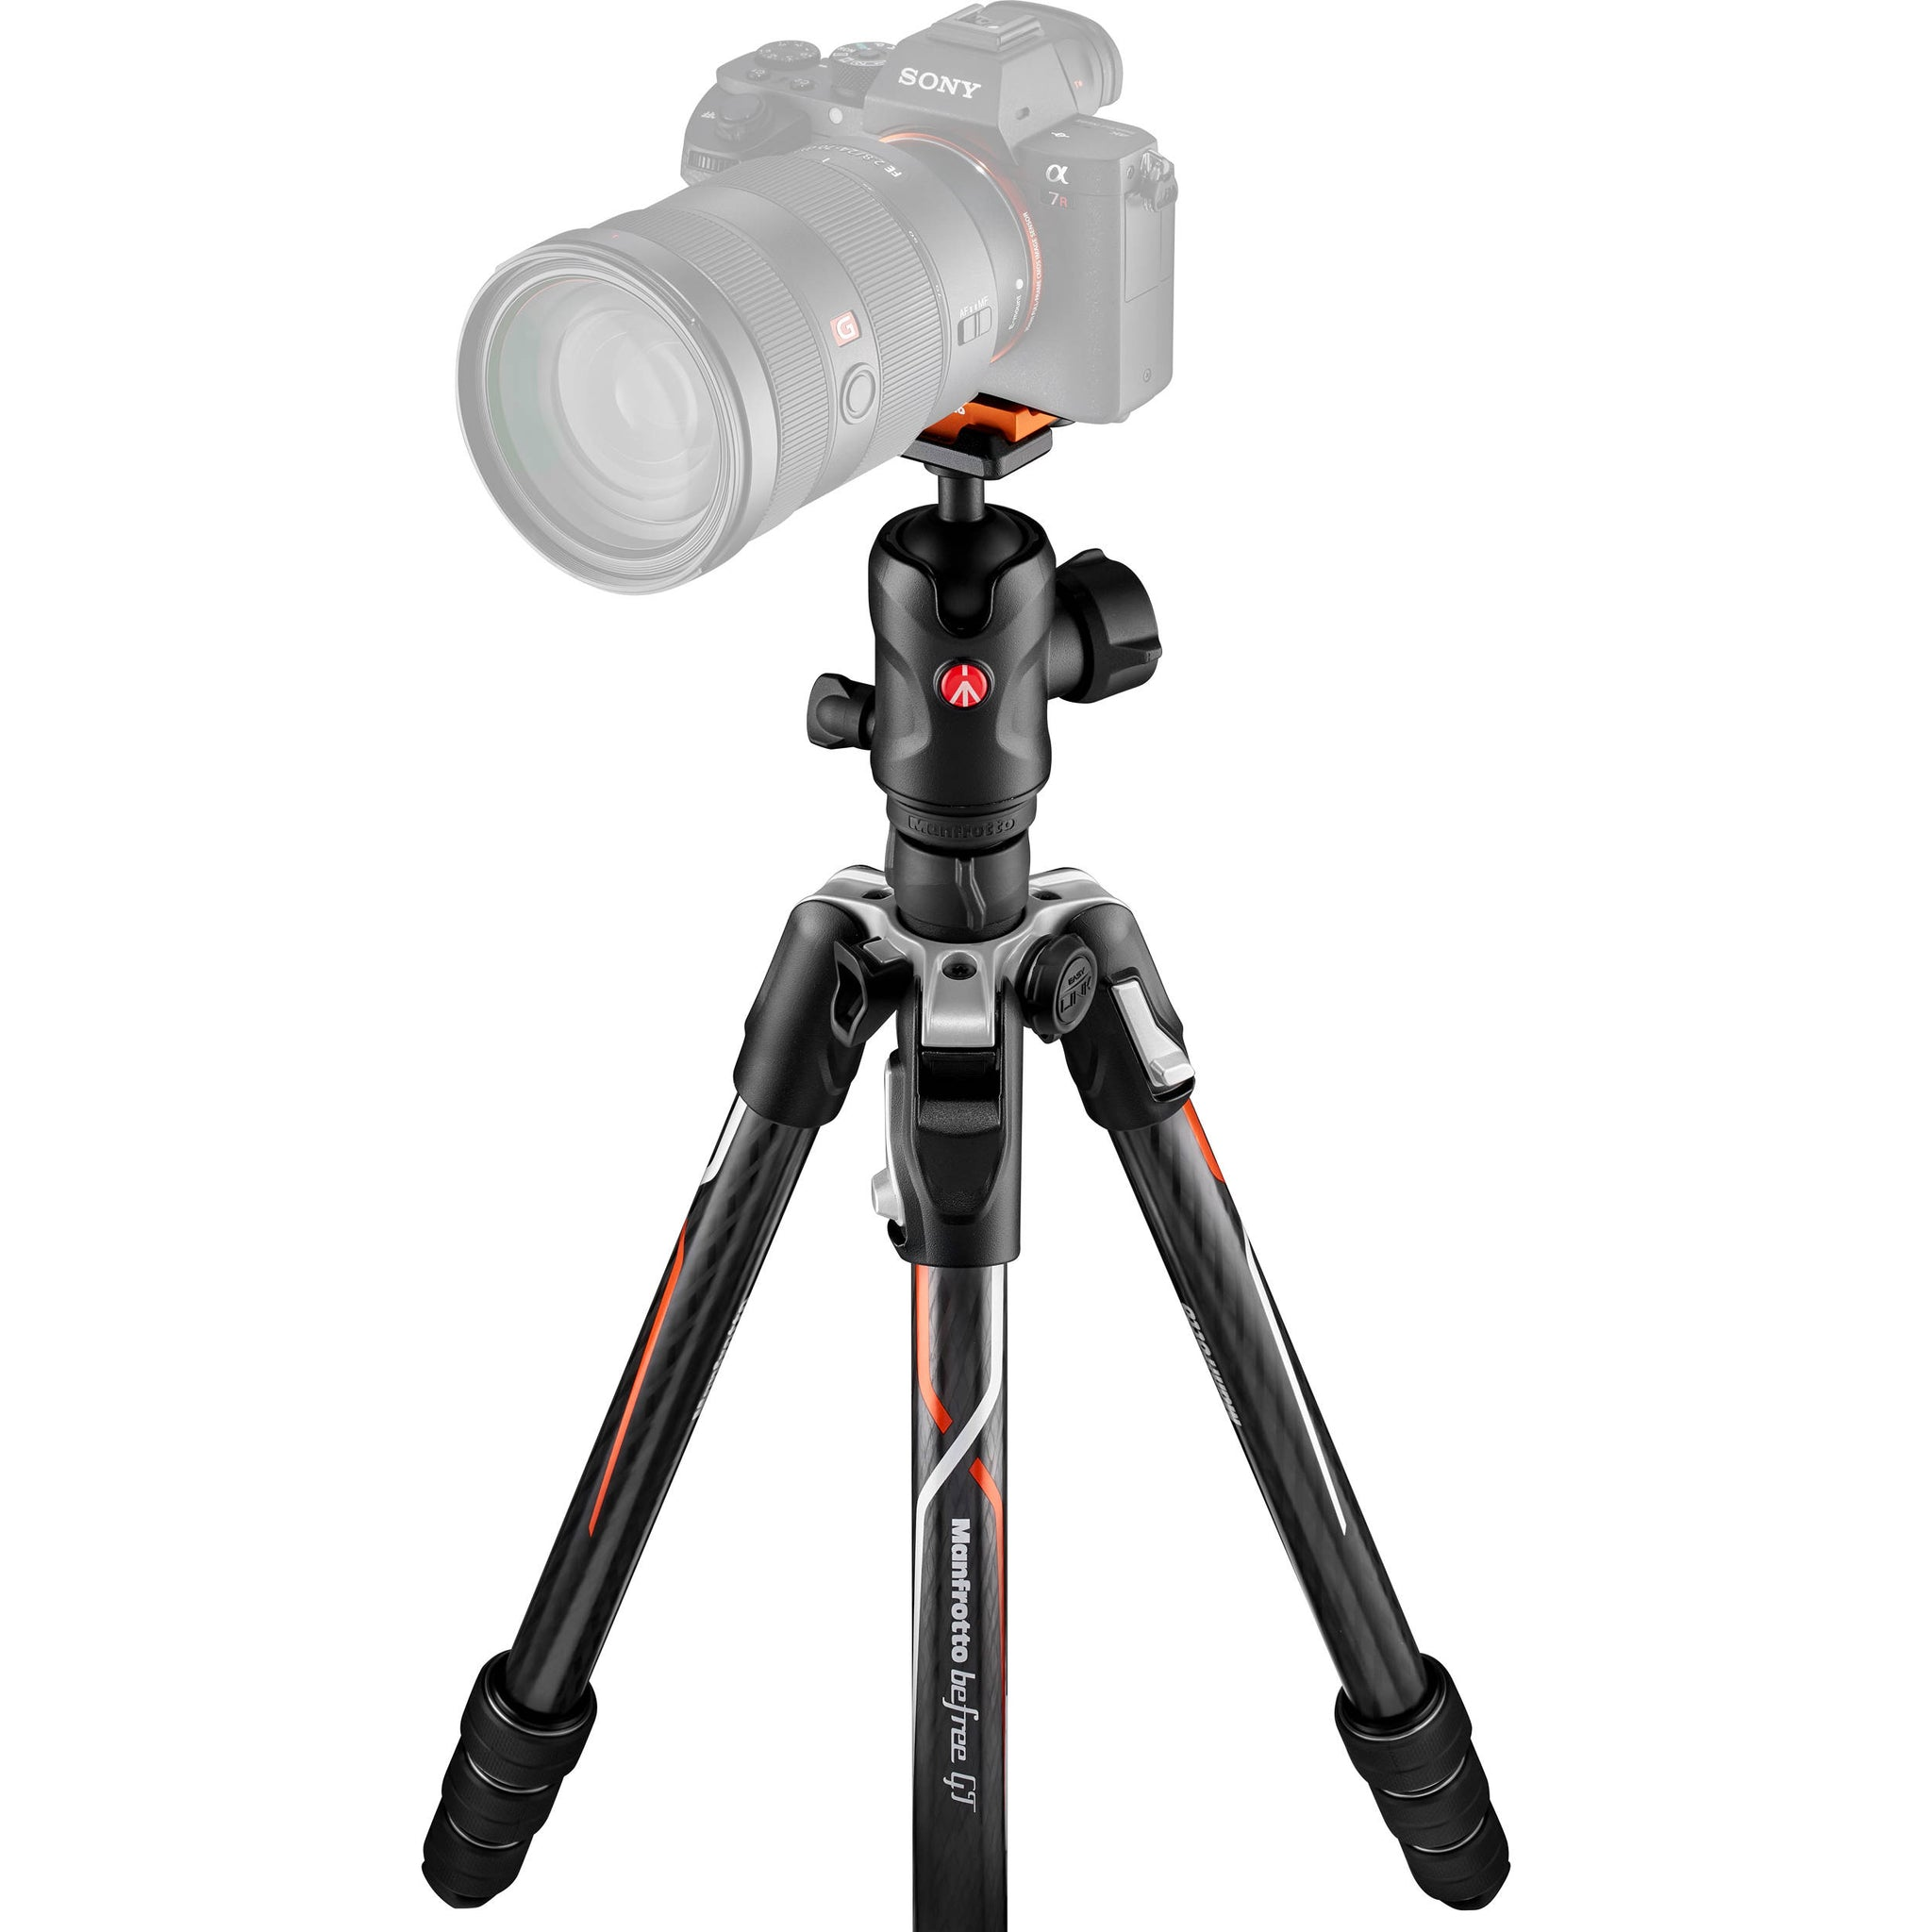 Manfrotto Befree GT Travel Carbon Fiber Tripod with 496 Ball Head for Sony a Series Cameras (Black)